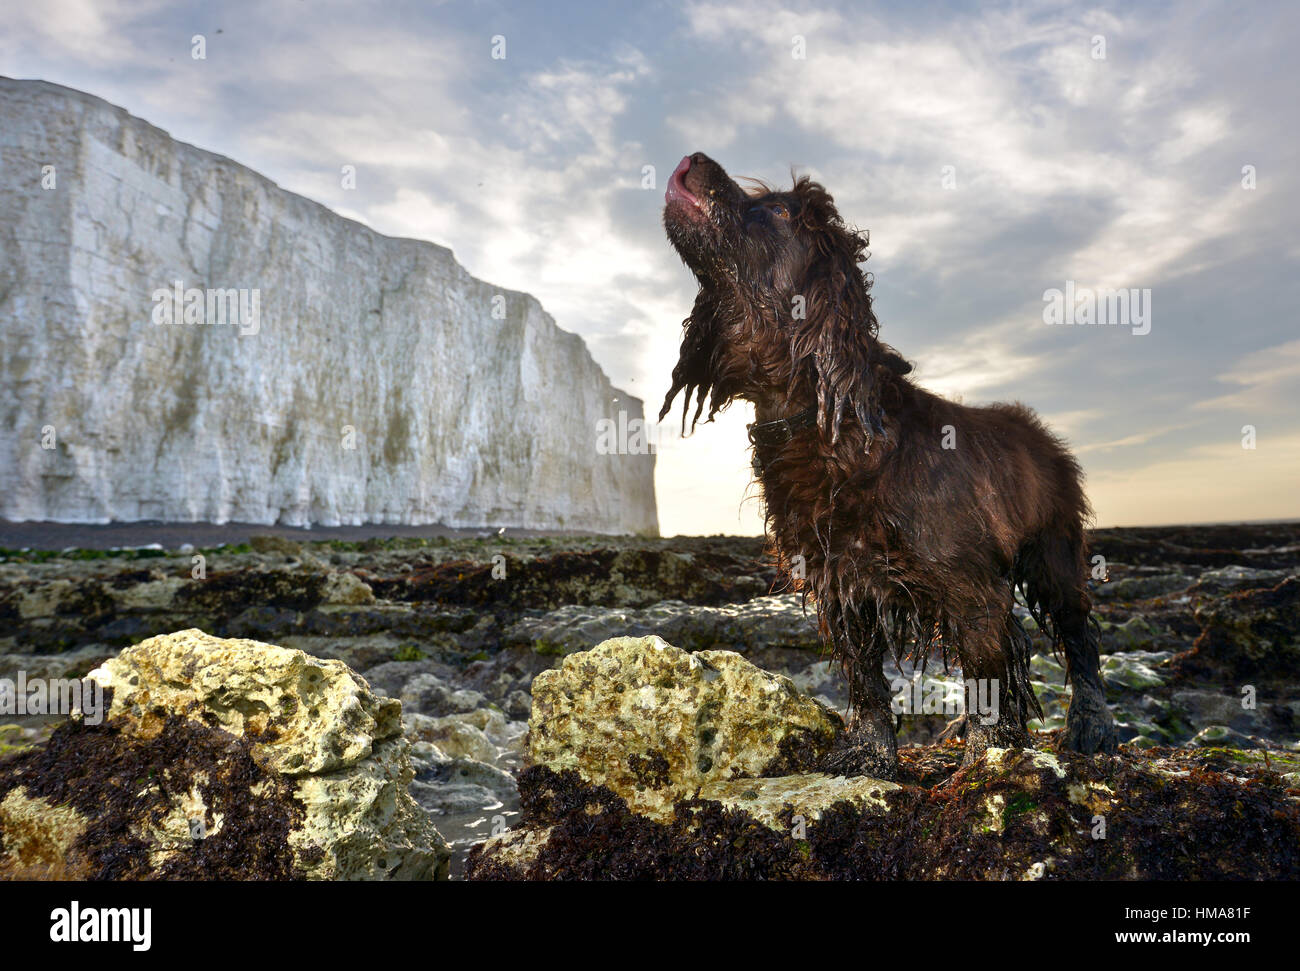 Birling Gap, East Sussex. 2nd February 2017. Wet cocker spaniel, Fudge, at sunrise below the cliffs at Birling Gap, - Stock Image